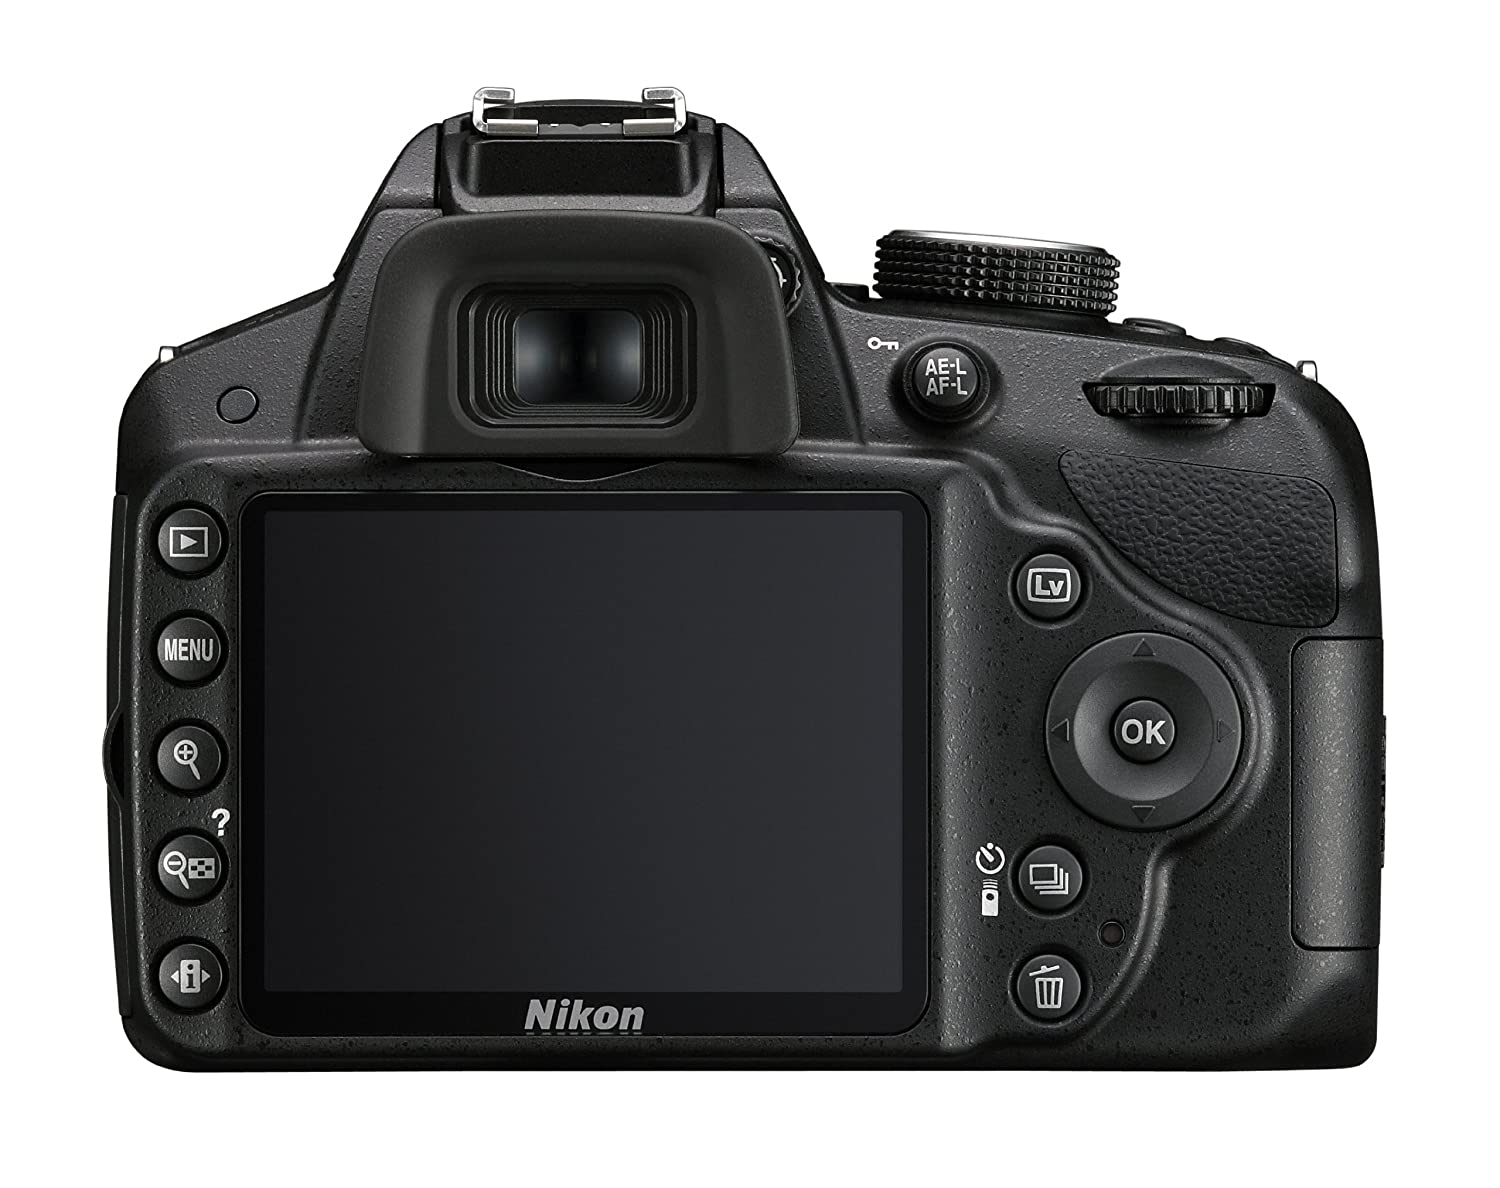 Camera Nikon Dslr D3200 Camera amazon com nikon d3200 24 2 mp cmos digital slr with 18 55mm f f3 5 6 auto focus s dx vr nikkor zoom lens black old model